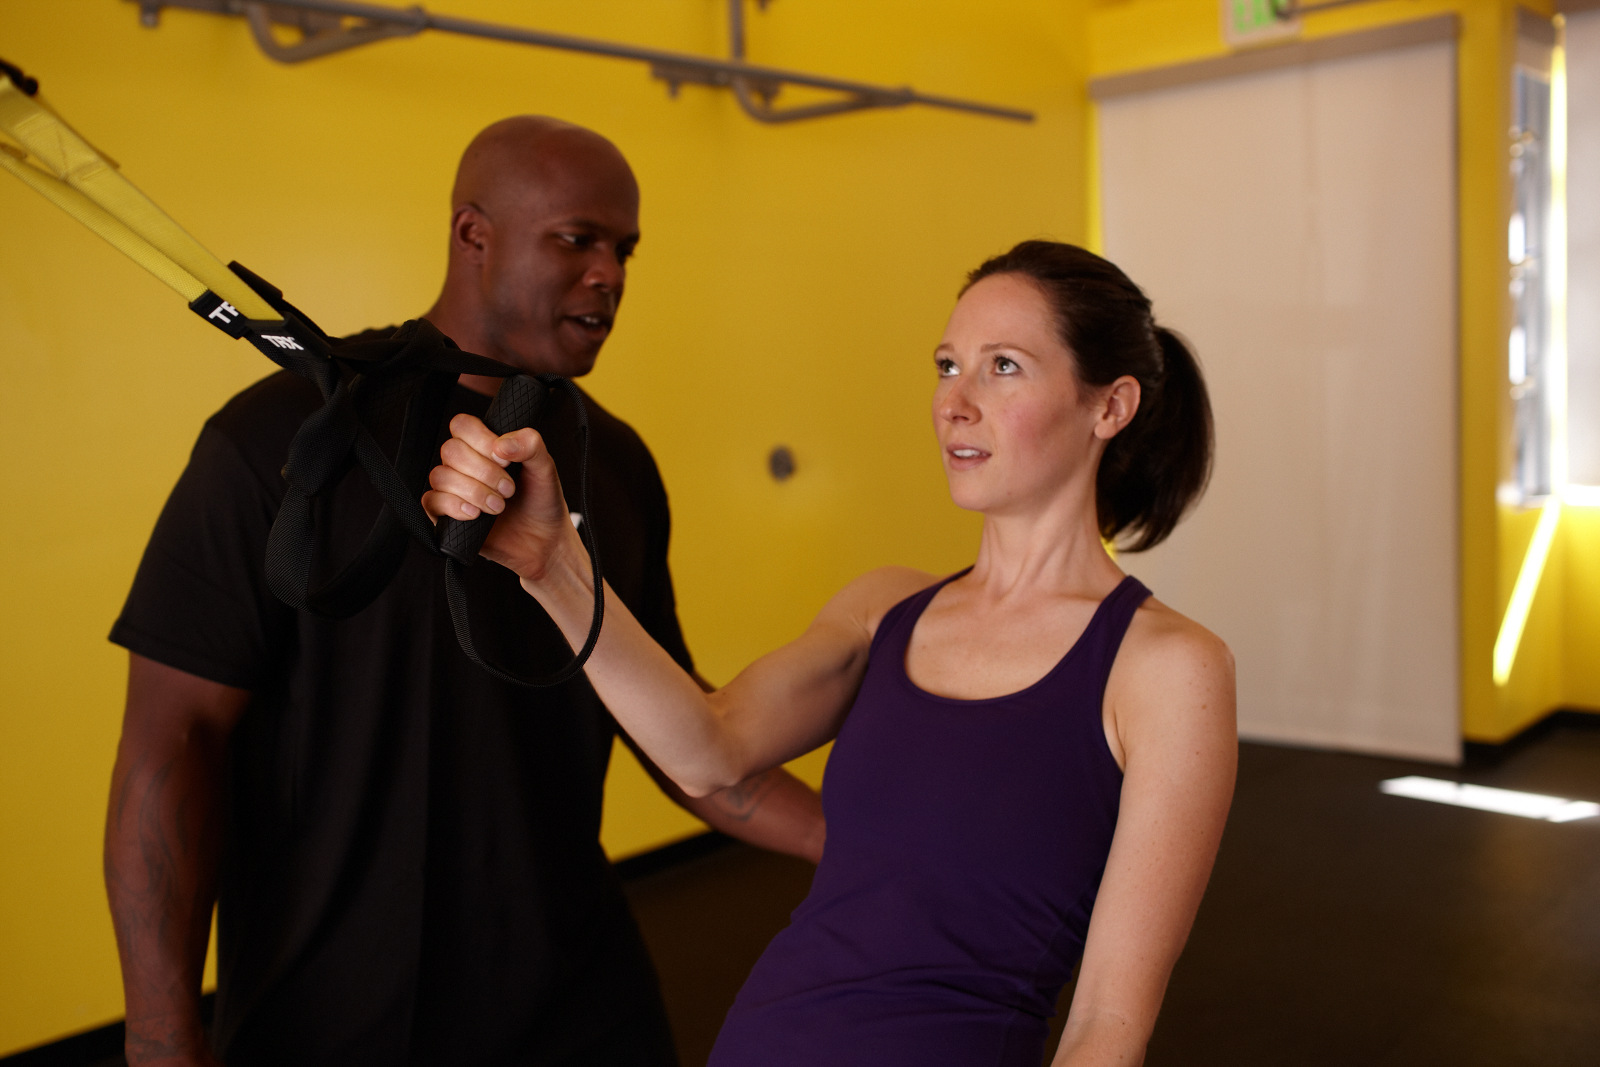 trainer coaching a client in performing a single arm exercise on TRX Suspension Trainer